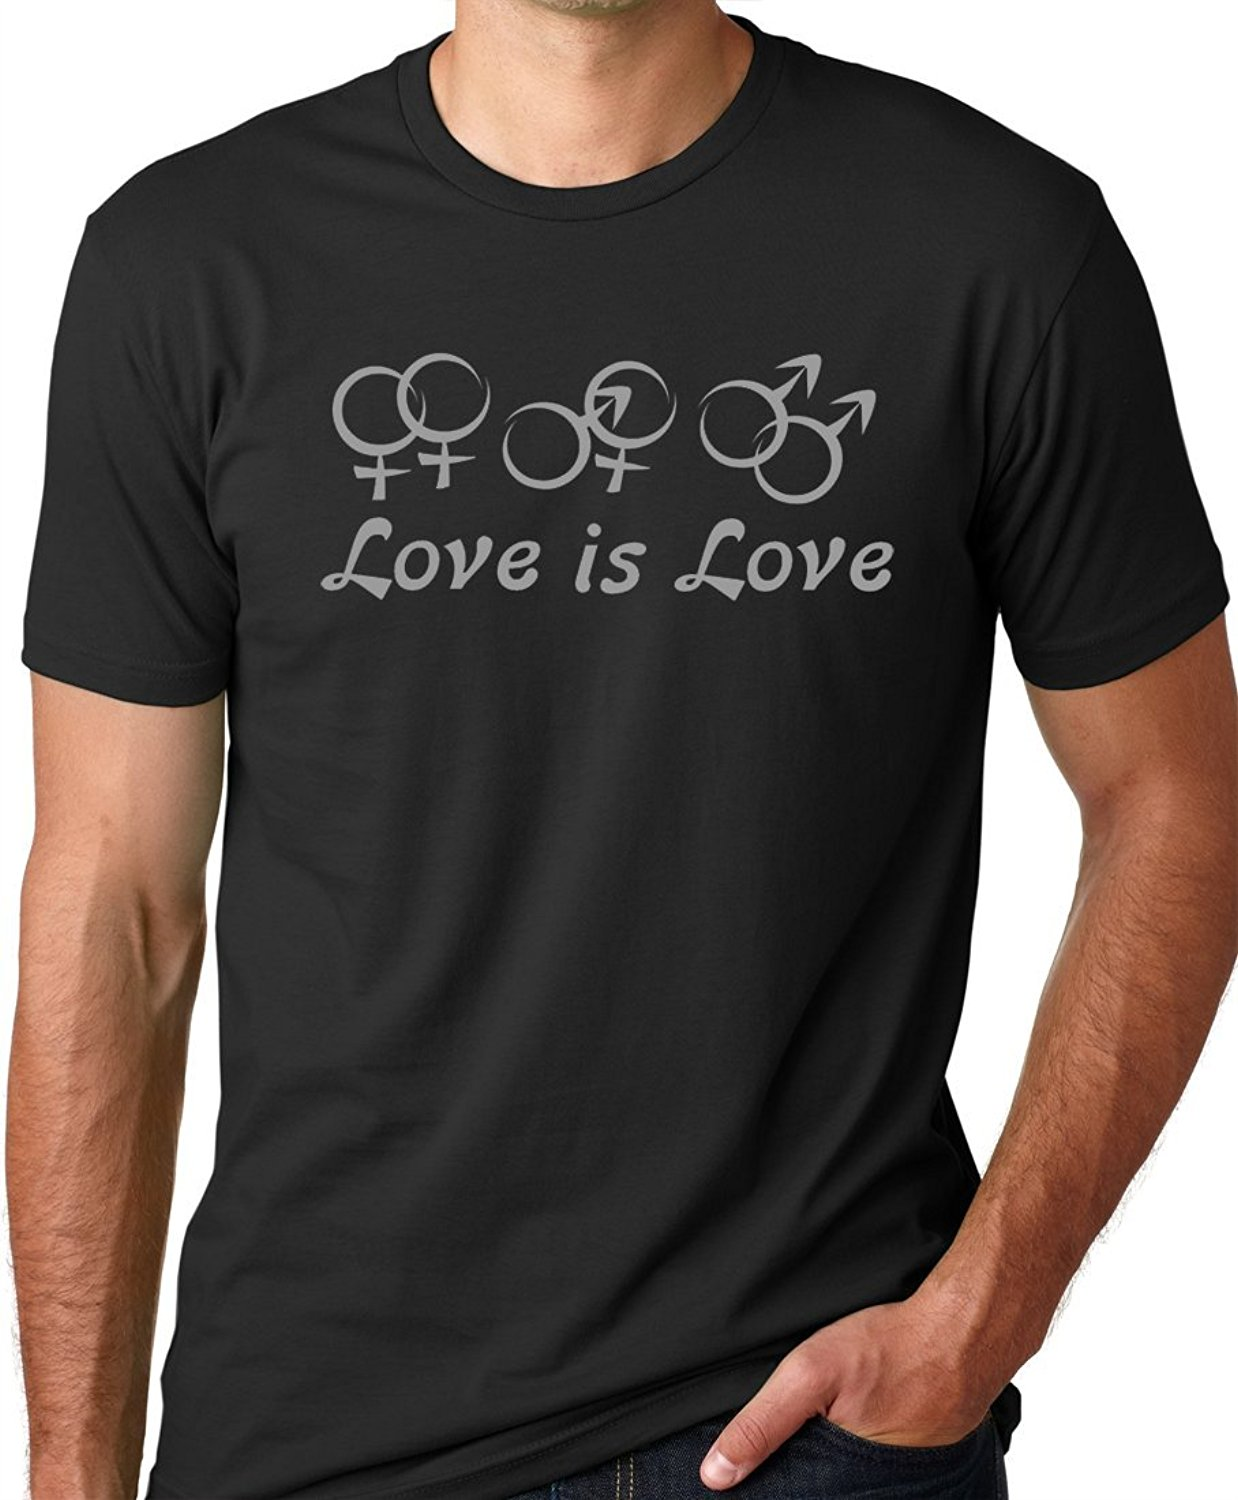 from Jameson gay marriage clothing